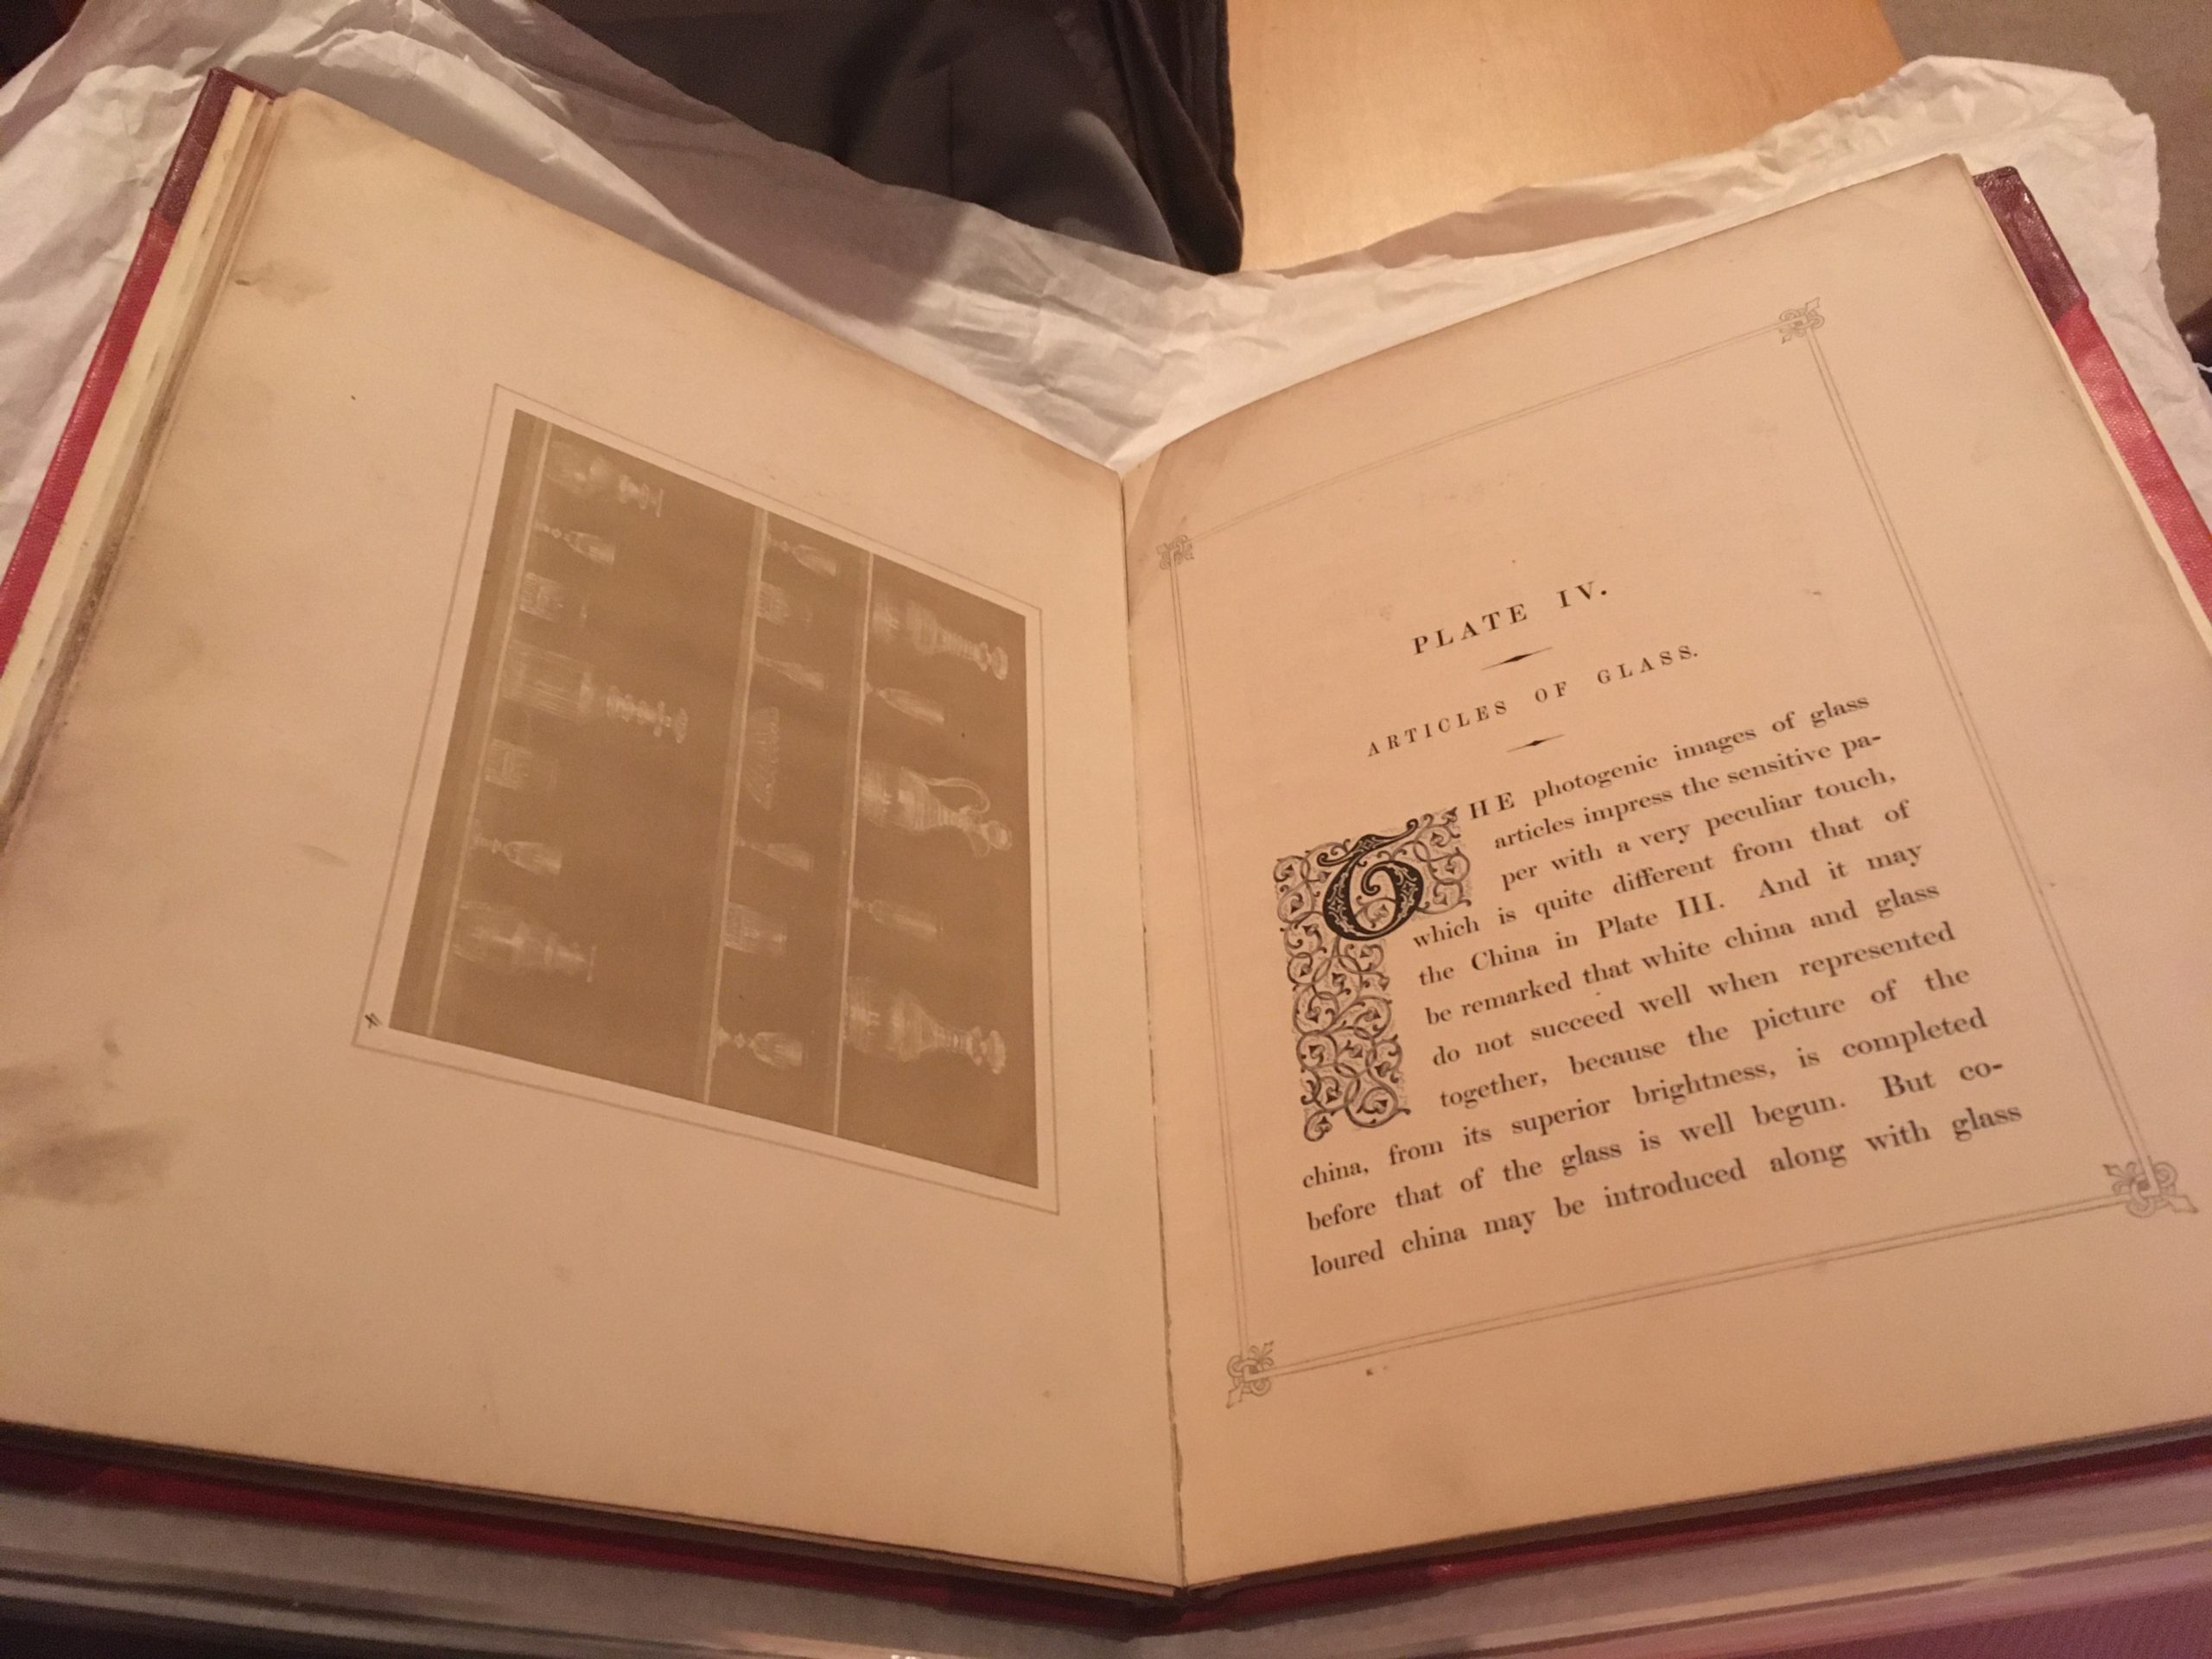 Photo of inside of the large old book 'Pencil of Nature.'